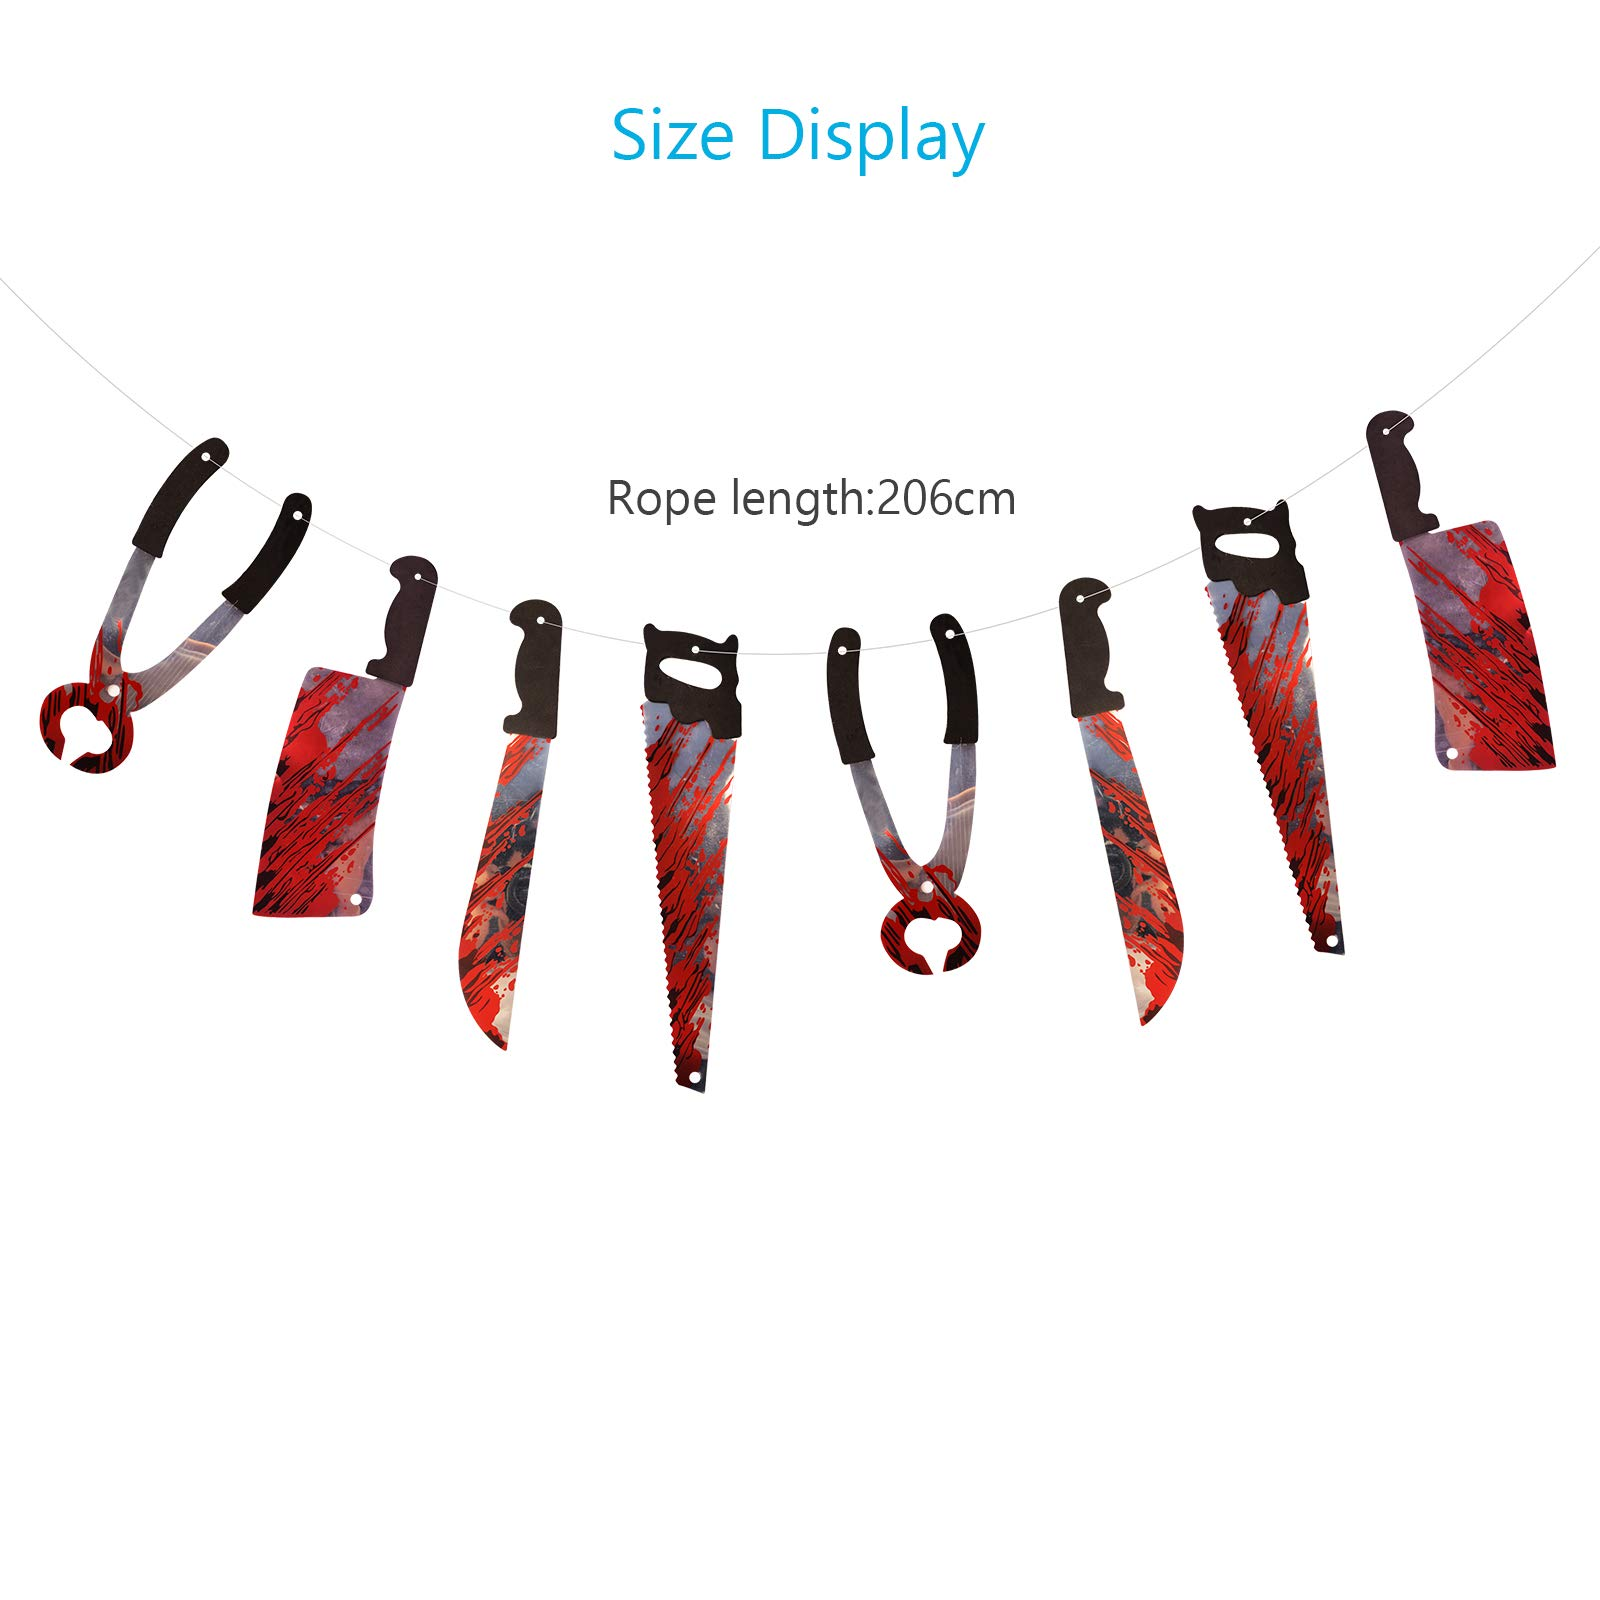 ZERHOK Bloody Weapon Garland, 2pack Halloween Hanging Decorations Fake Torture Blood Knives Banner Photo Props for Halloween Fright Night Haunted House Themed Party Decor